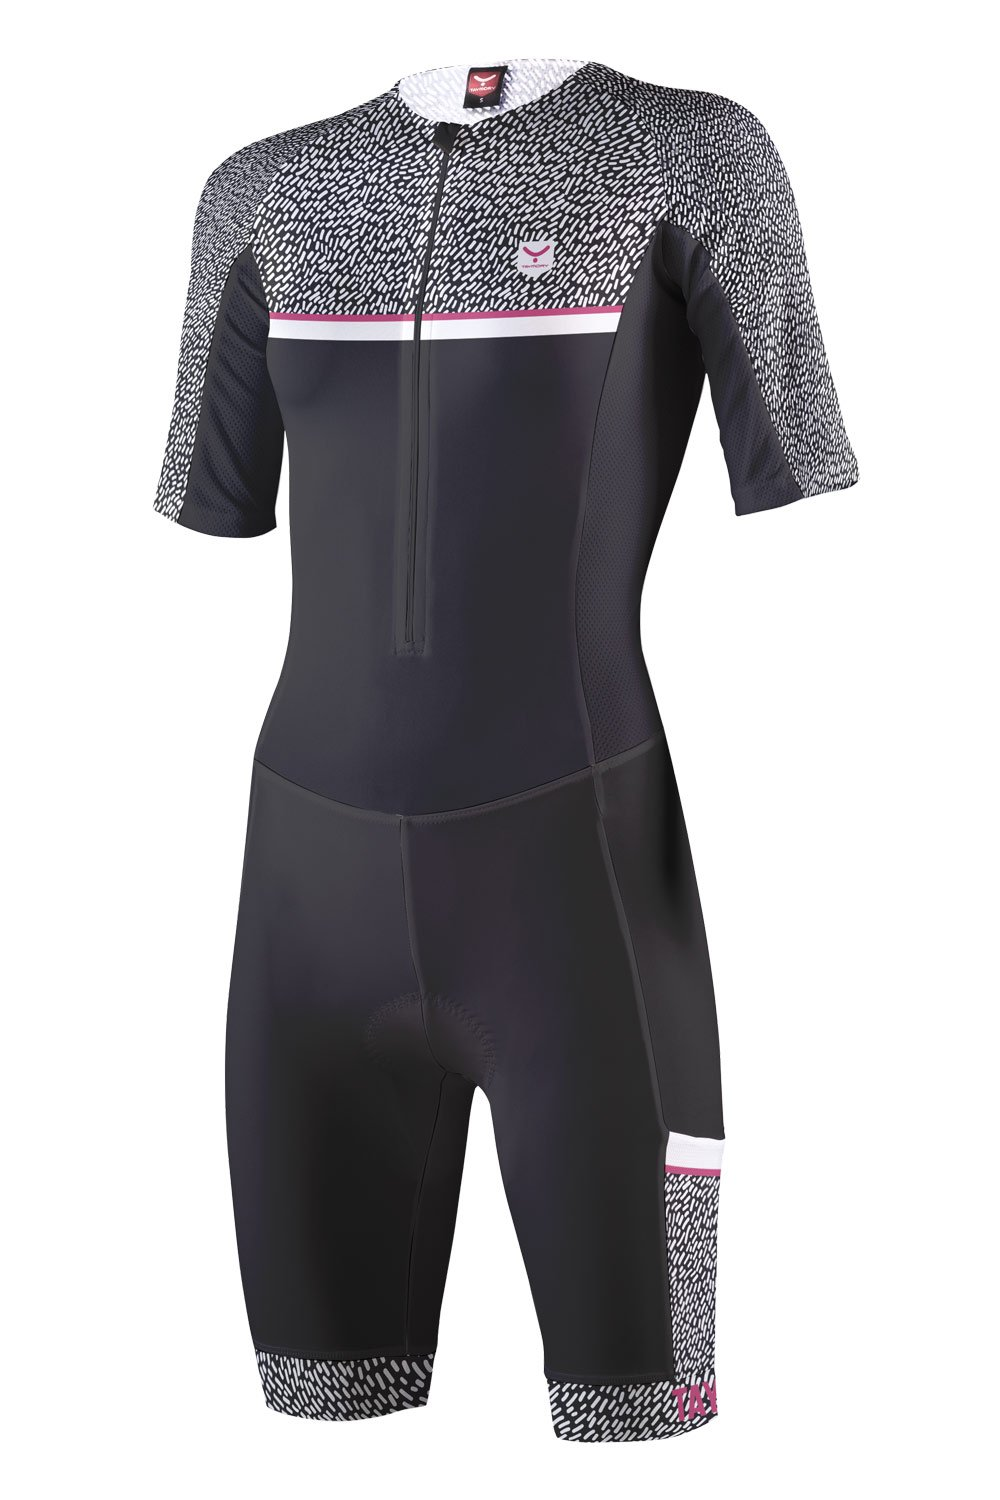 TAYMORY Feuer Top Long Distance, Damen Damen L Schwarz T60.5-SHOP (FEUER) 2 BACK POCKETS